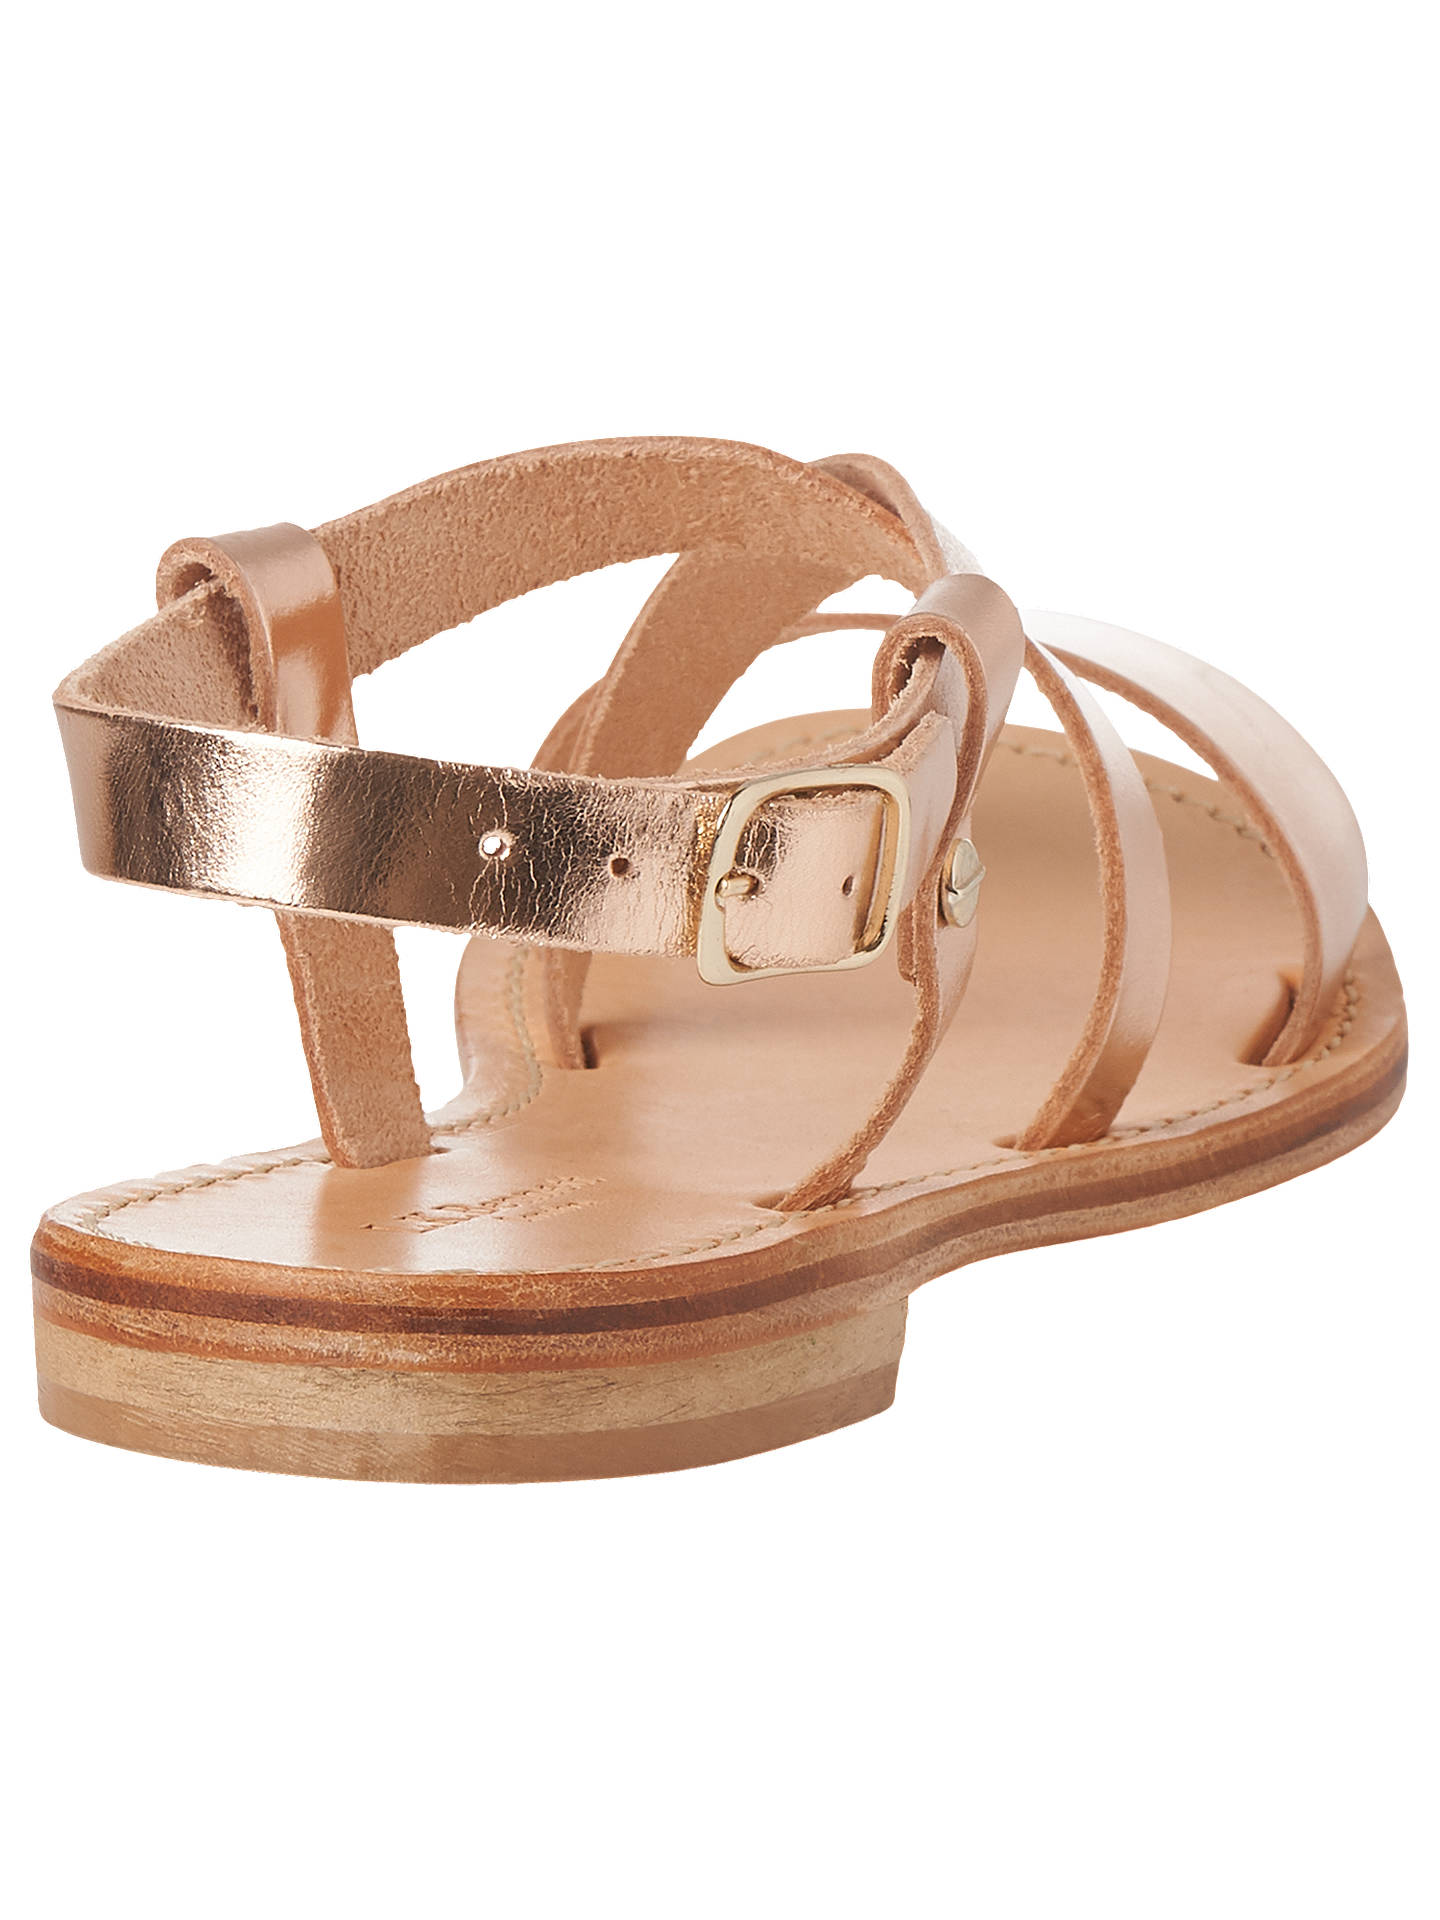 BuyL.K.Bennett Hemera Flat Sandals, Rose Gold Leather, 3 Online at johnlewis.com